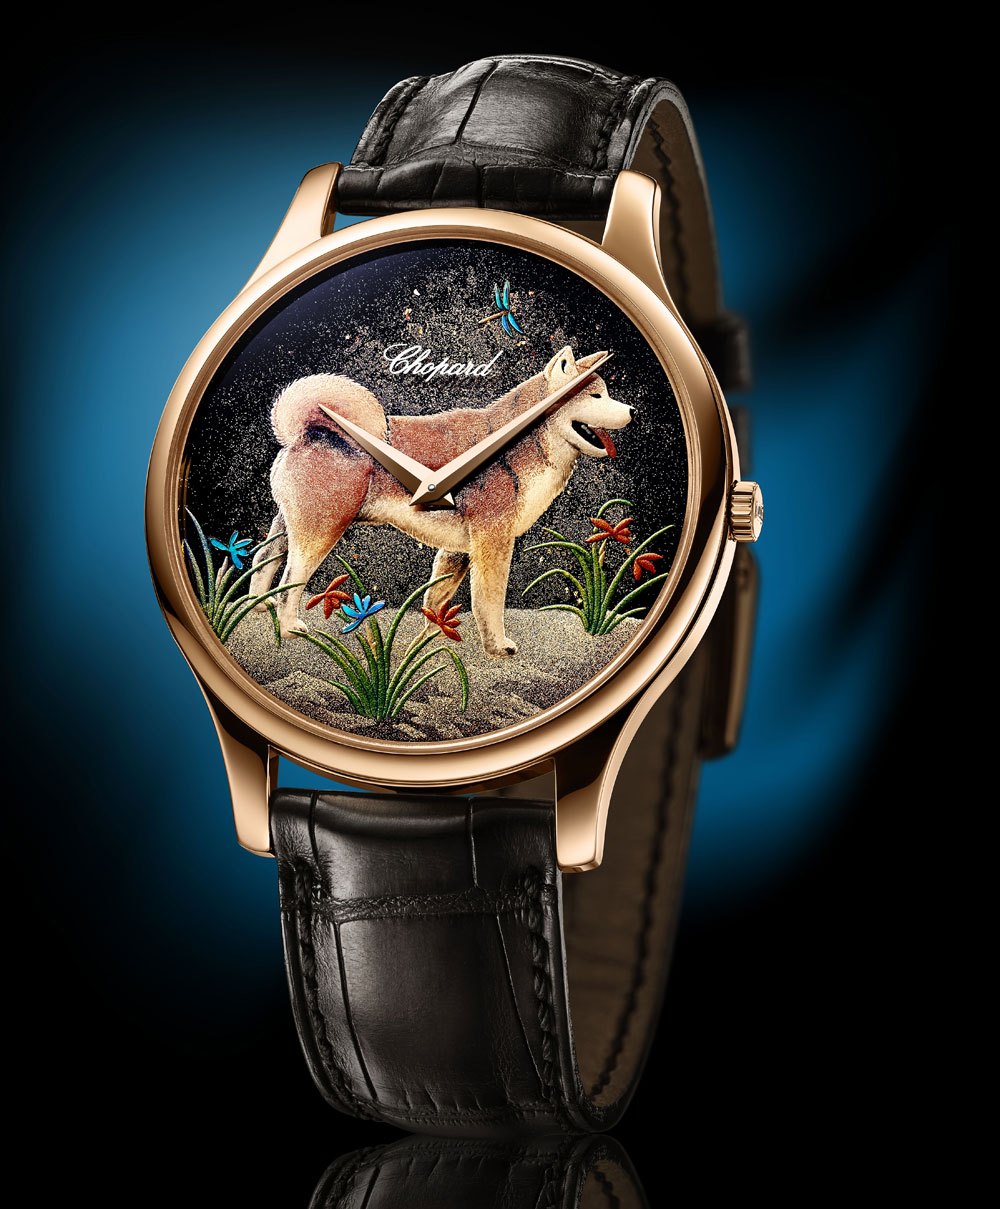 Reloj L.U.C XP URUSHI YEAR OF THE DOG DE CHOPARD